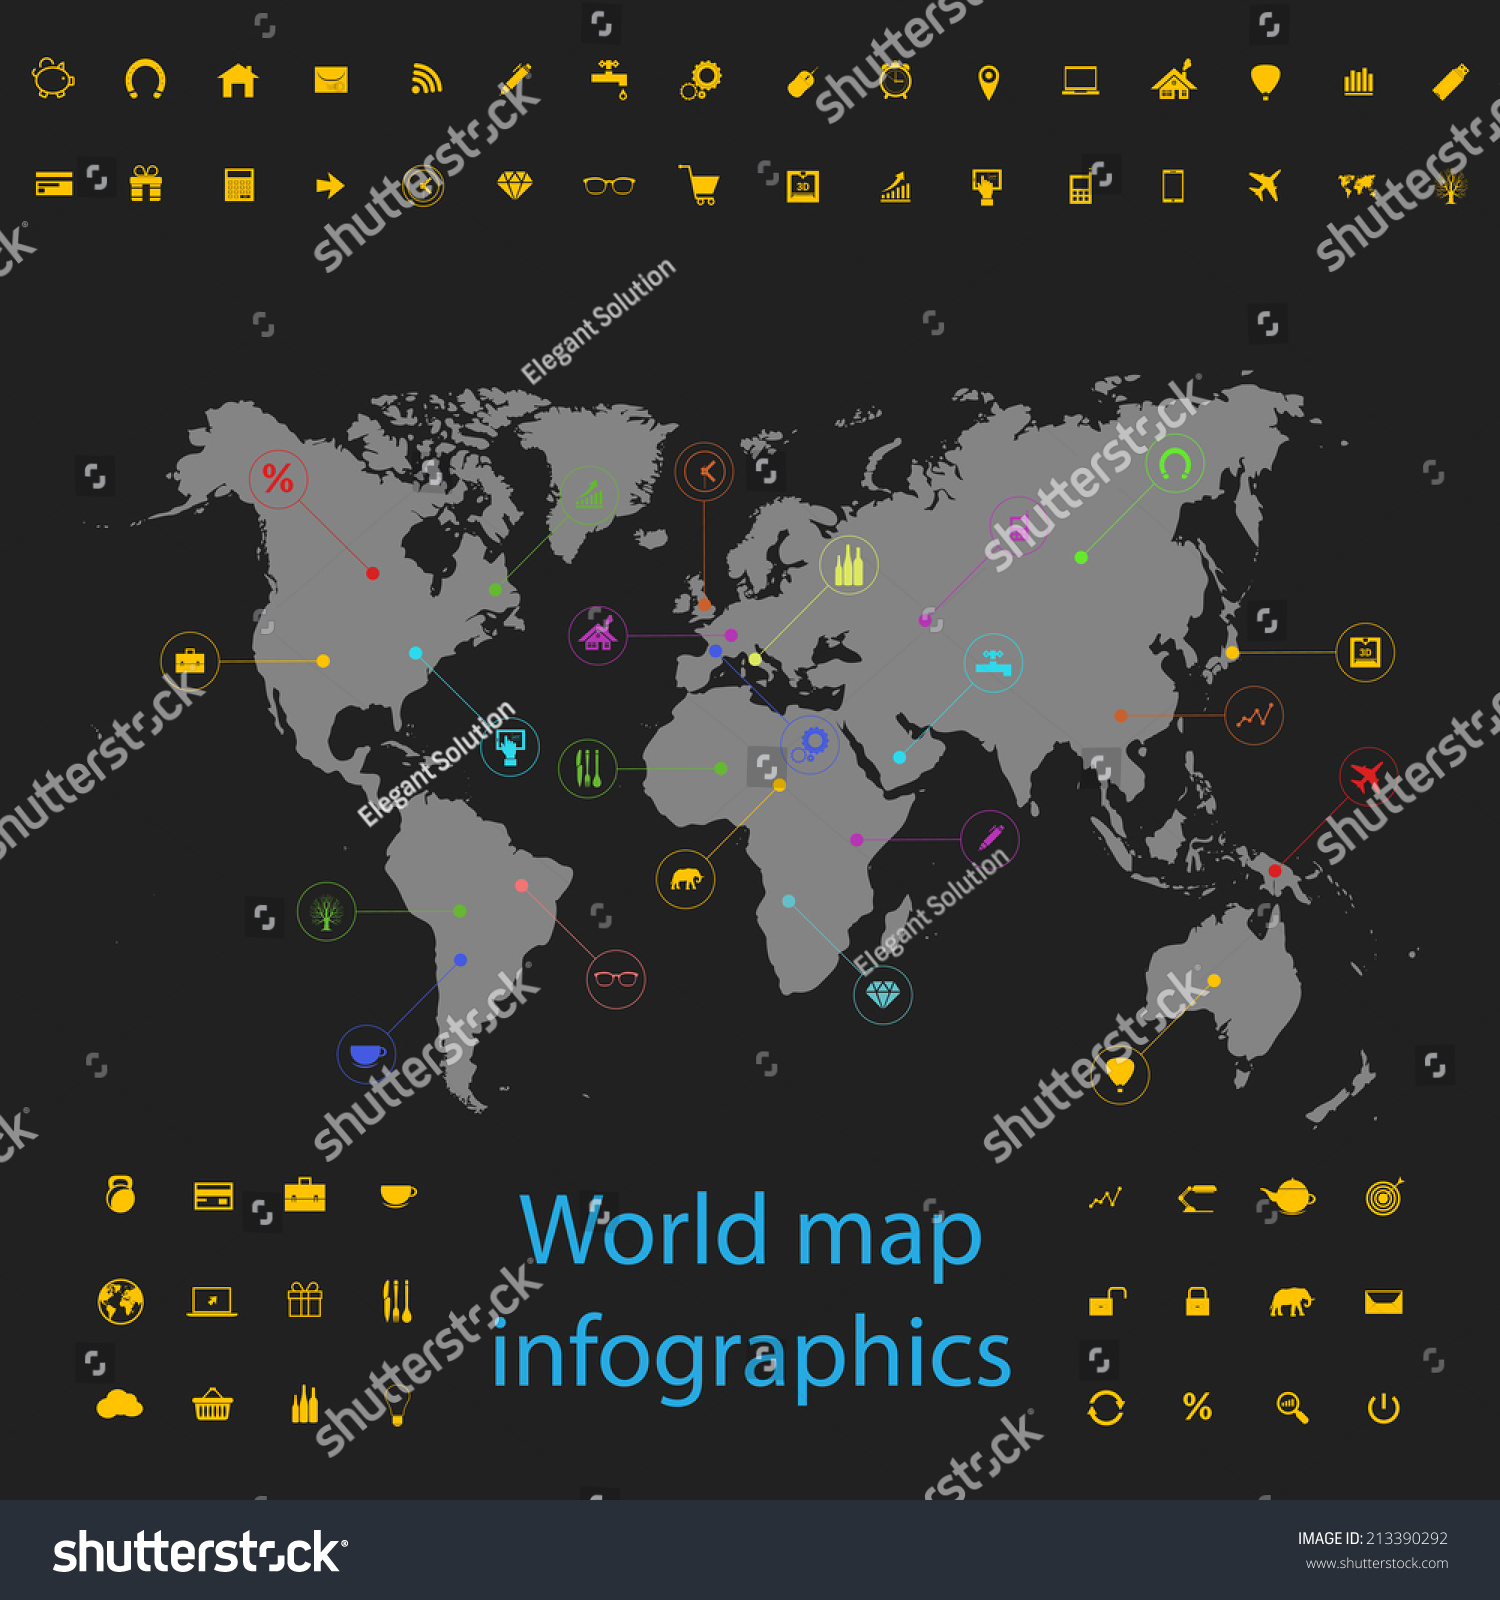 Vector picture world map night points stock vector 213390292 vector picture of world map at night with points and icons infographics for activity gumiabroncs Images